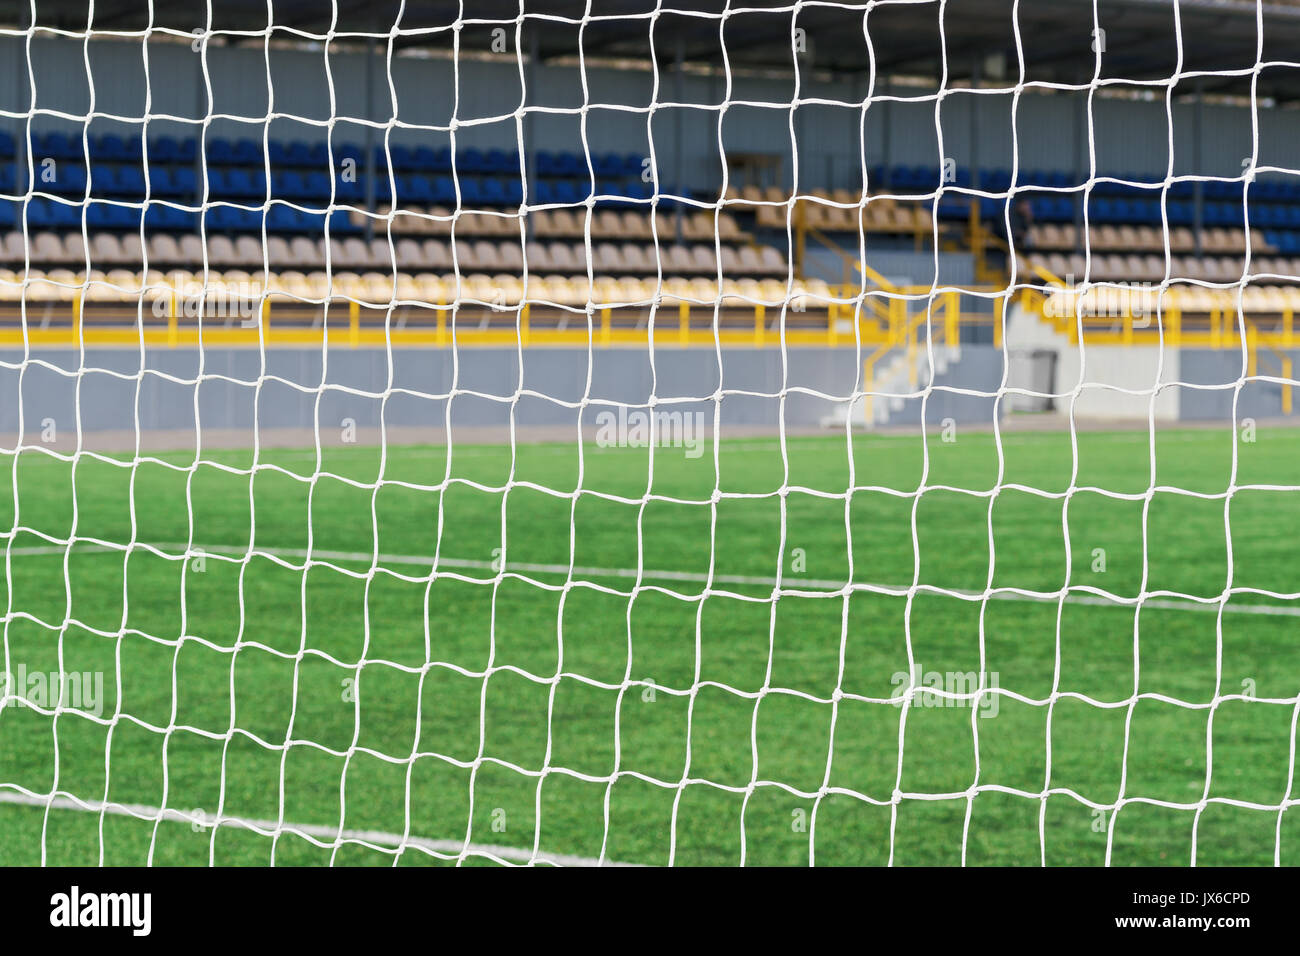 Behind goal of soccer field. Soccer football net background over green grass or soccer field and blurry empty stadium. Football,soccer field. Match wi - Stock Image